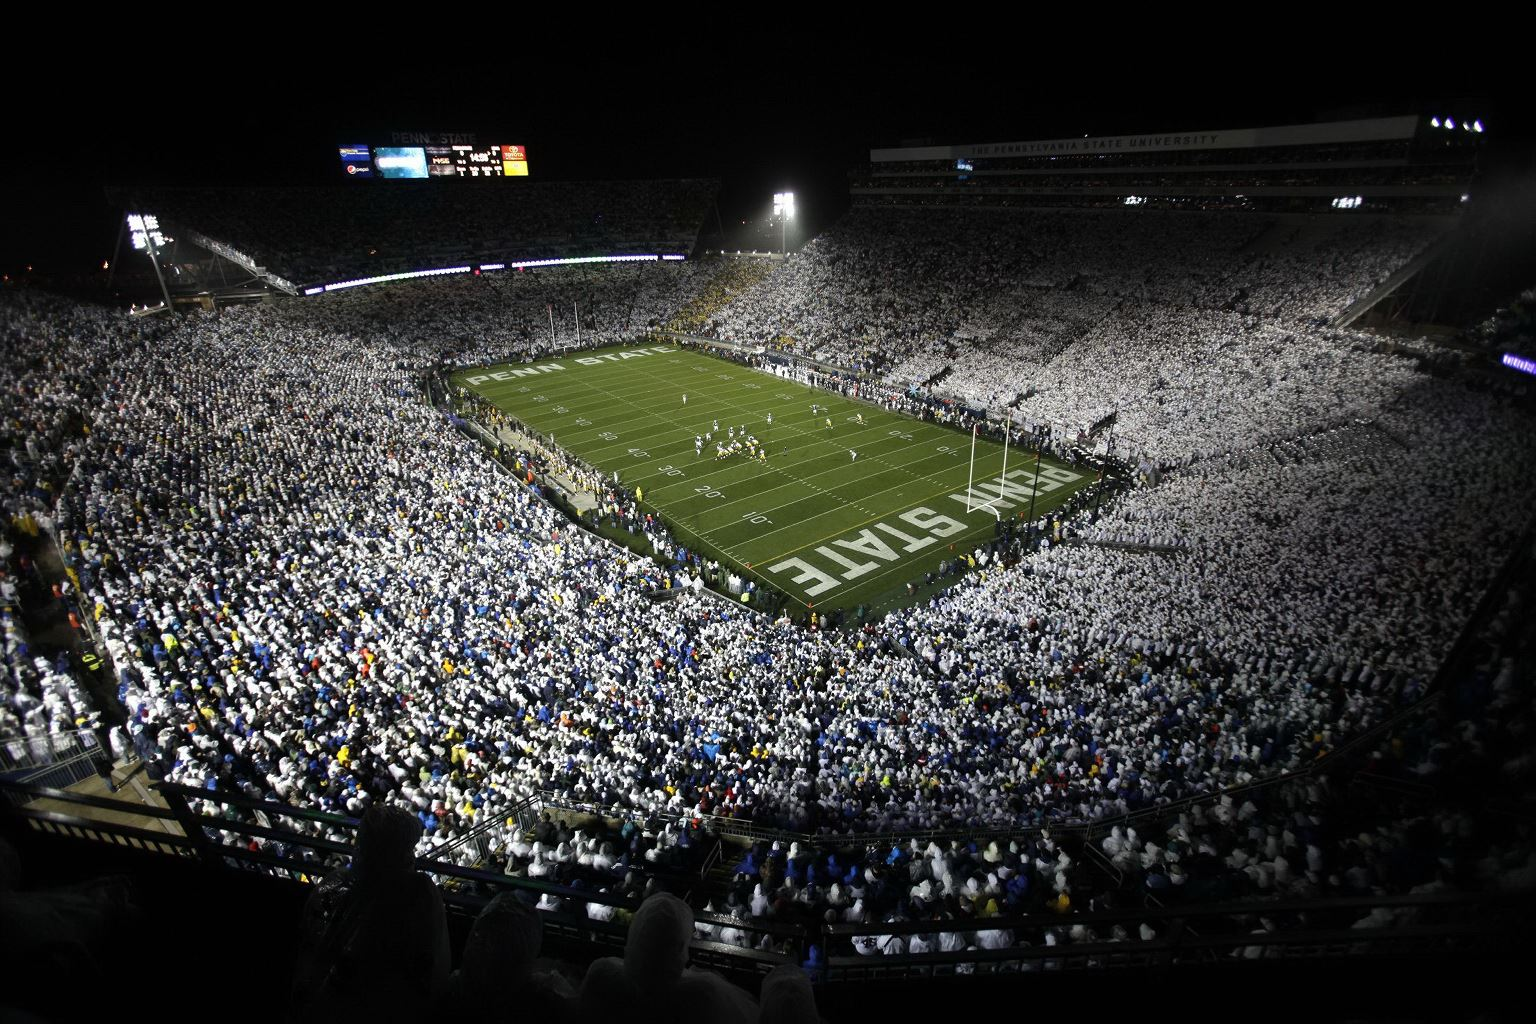 Penn State To Honor Joe Paterno Before Temple Game This Season